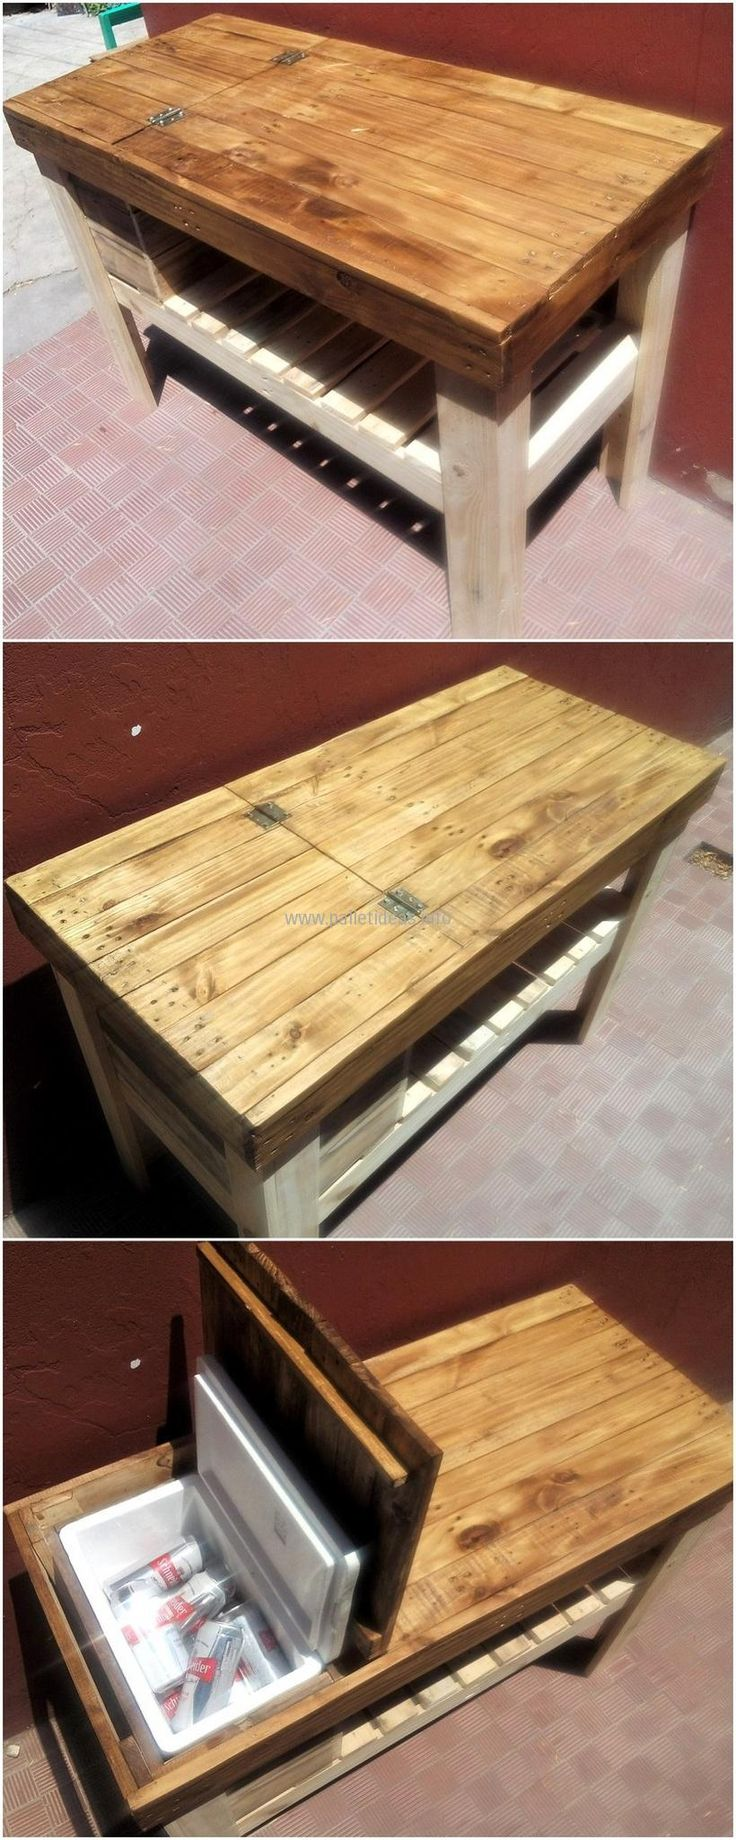 657 best images about art wood pallet on pinterest - Palette recyclee ...